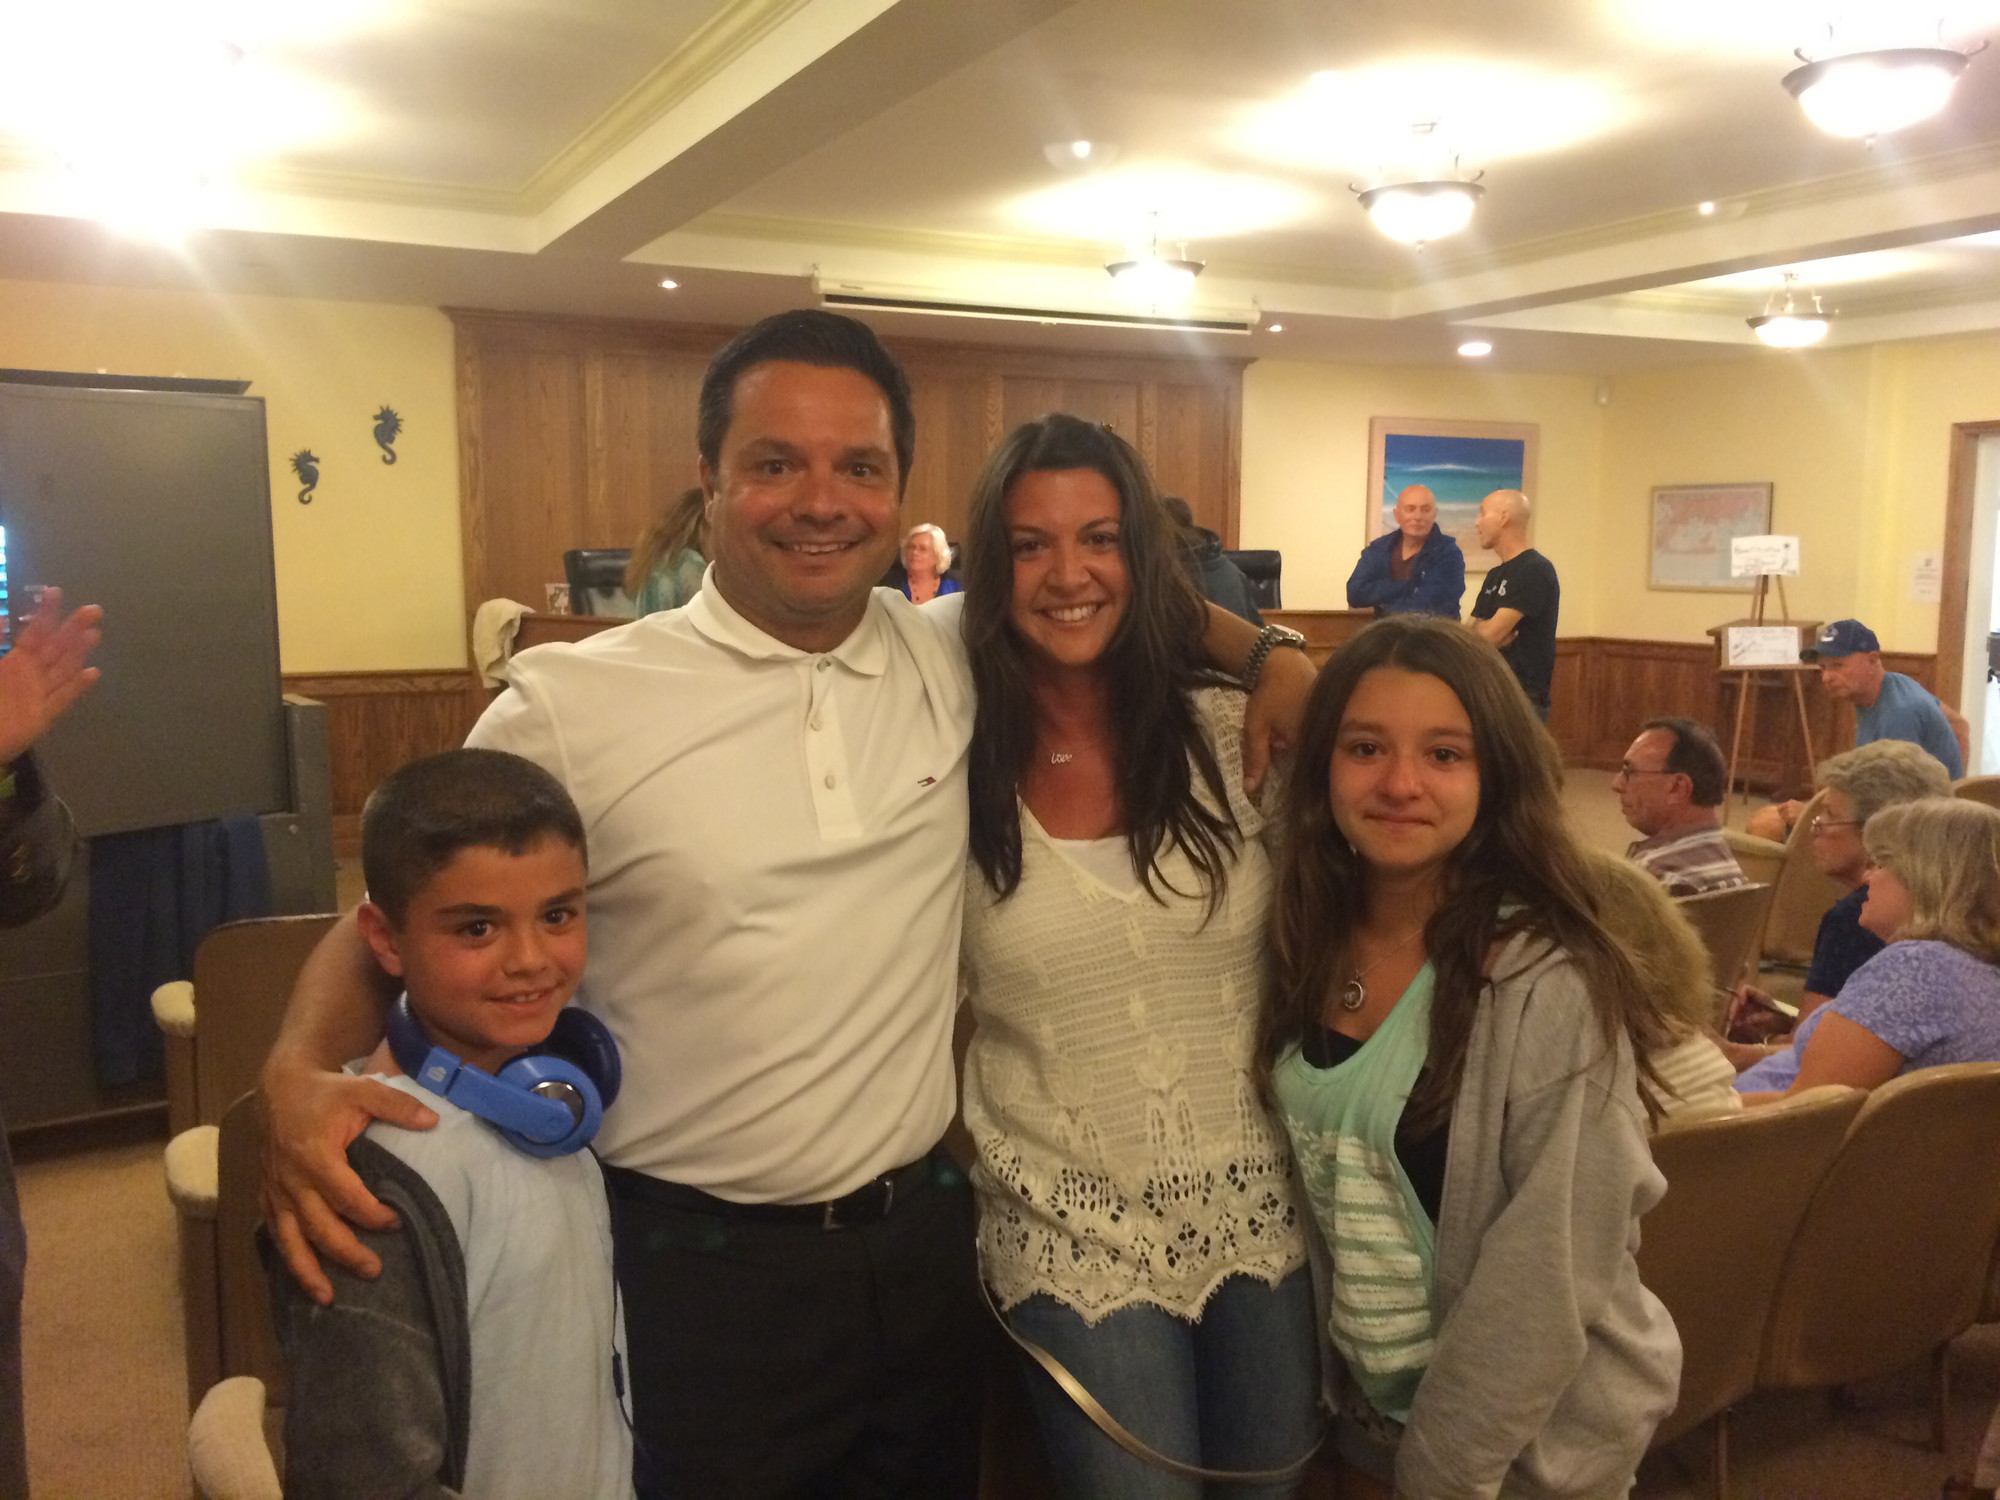 Atlantic Beach elected a new mayor as George Pappas, with family, unseated incumbent Stephen Mahler by 61 votes.